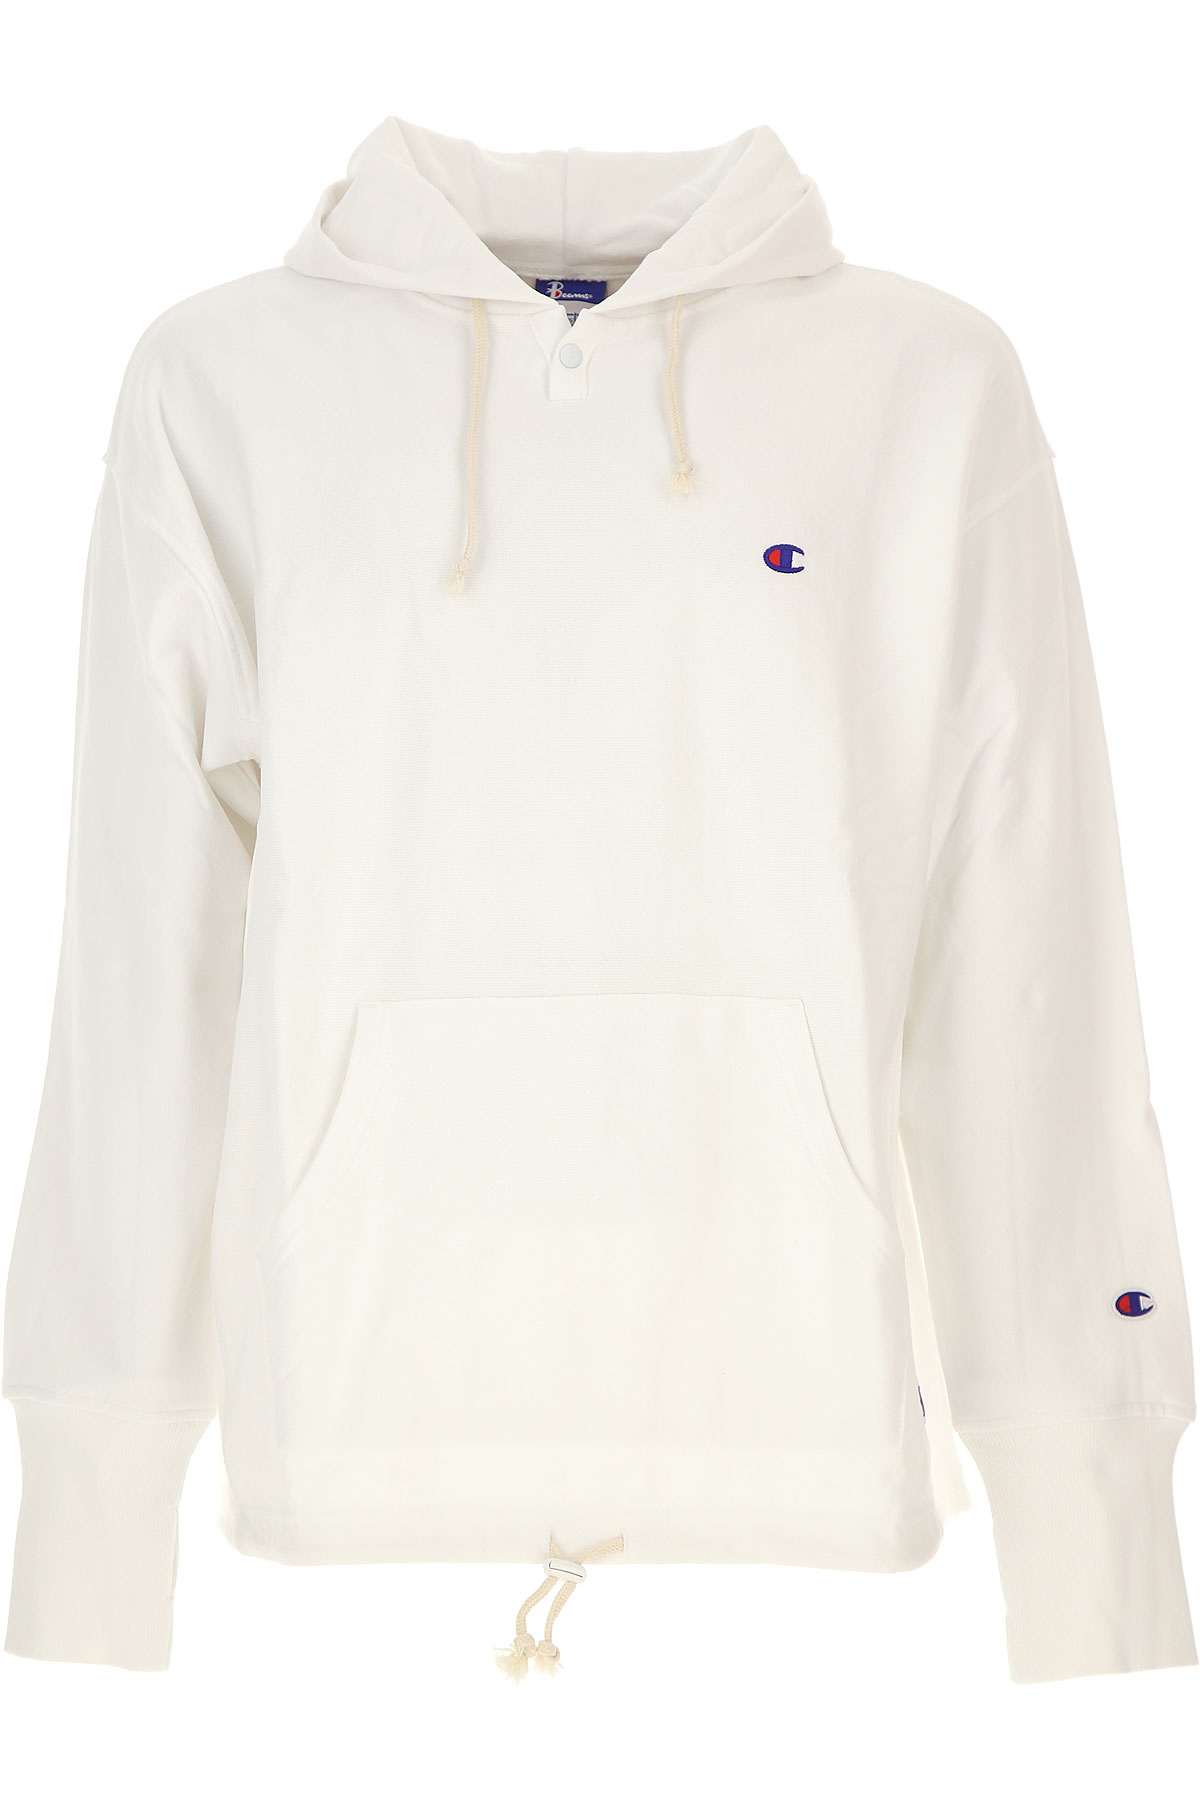 Champion Sweatshirt for Men, White, Cotton, 2017, L XL USA-454771